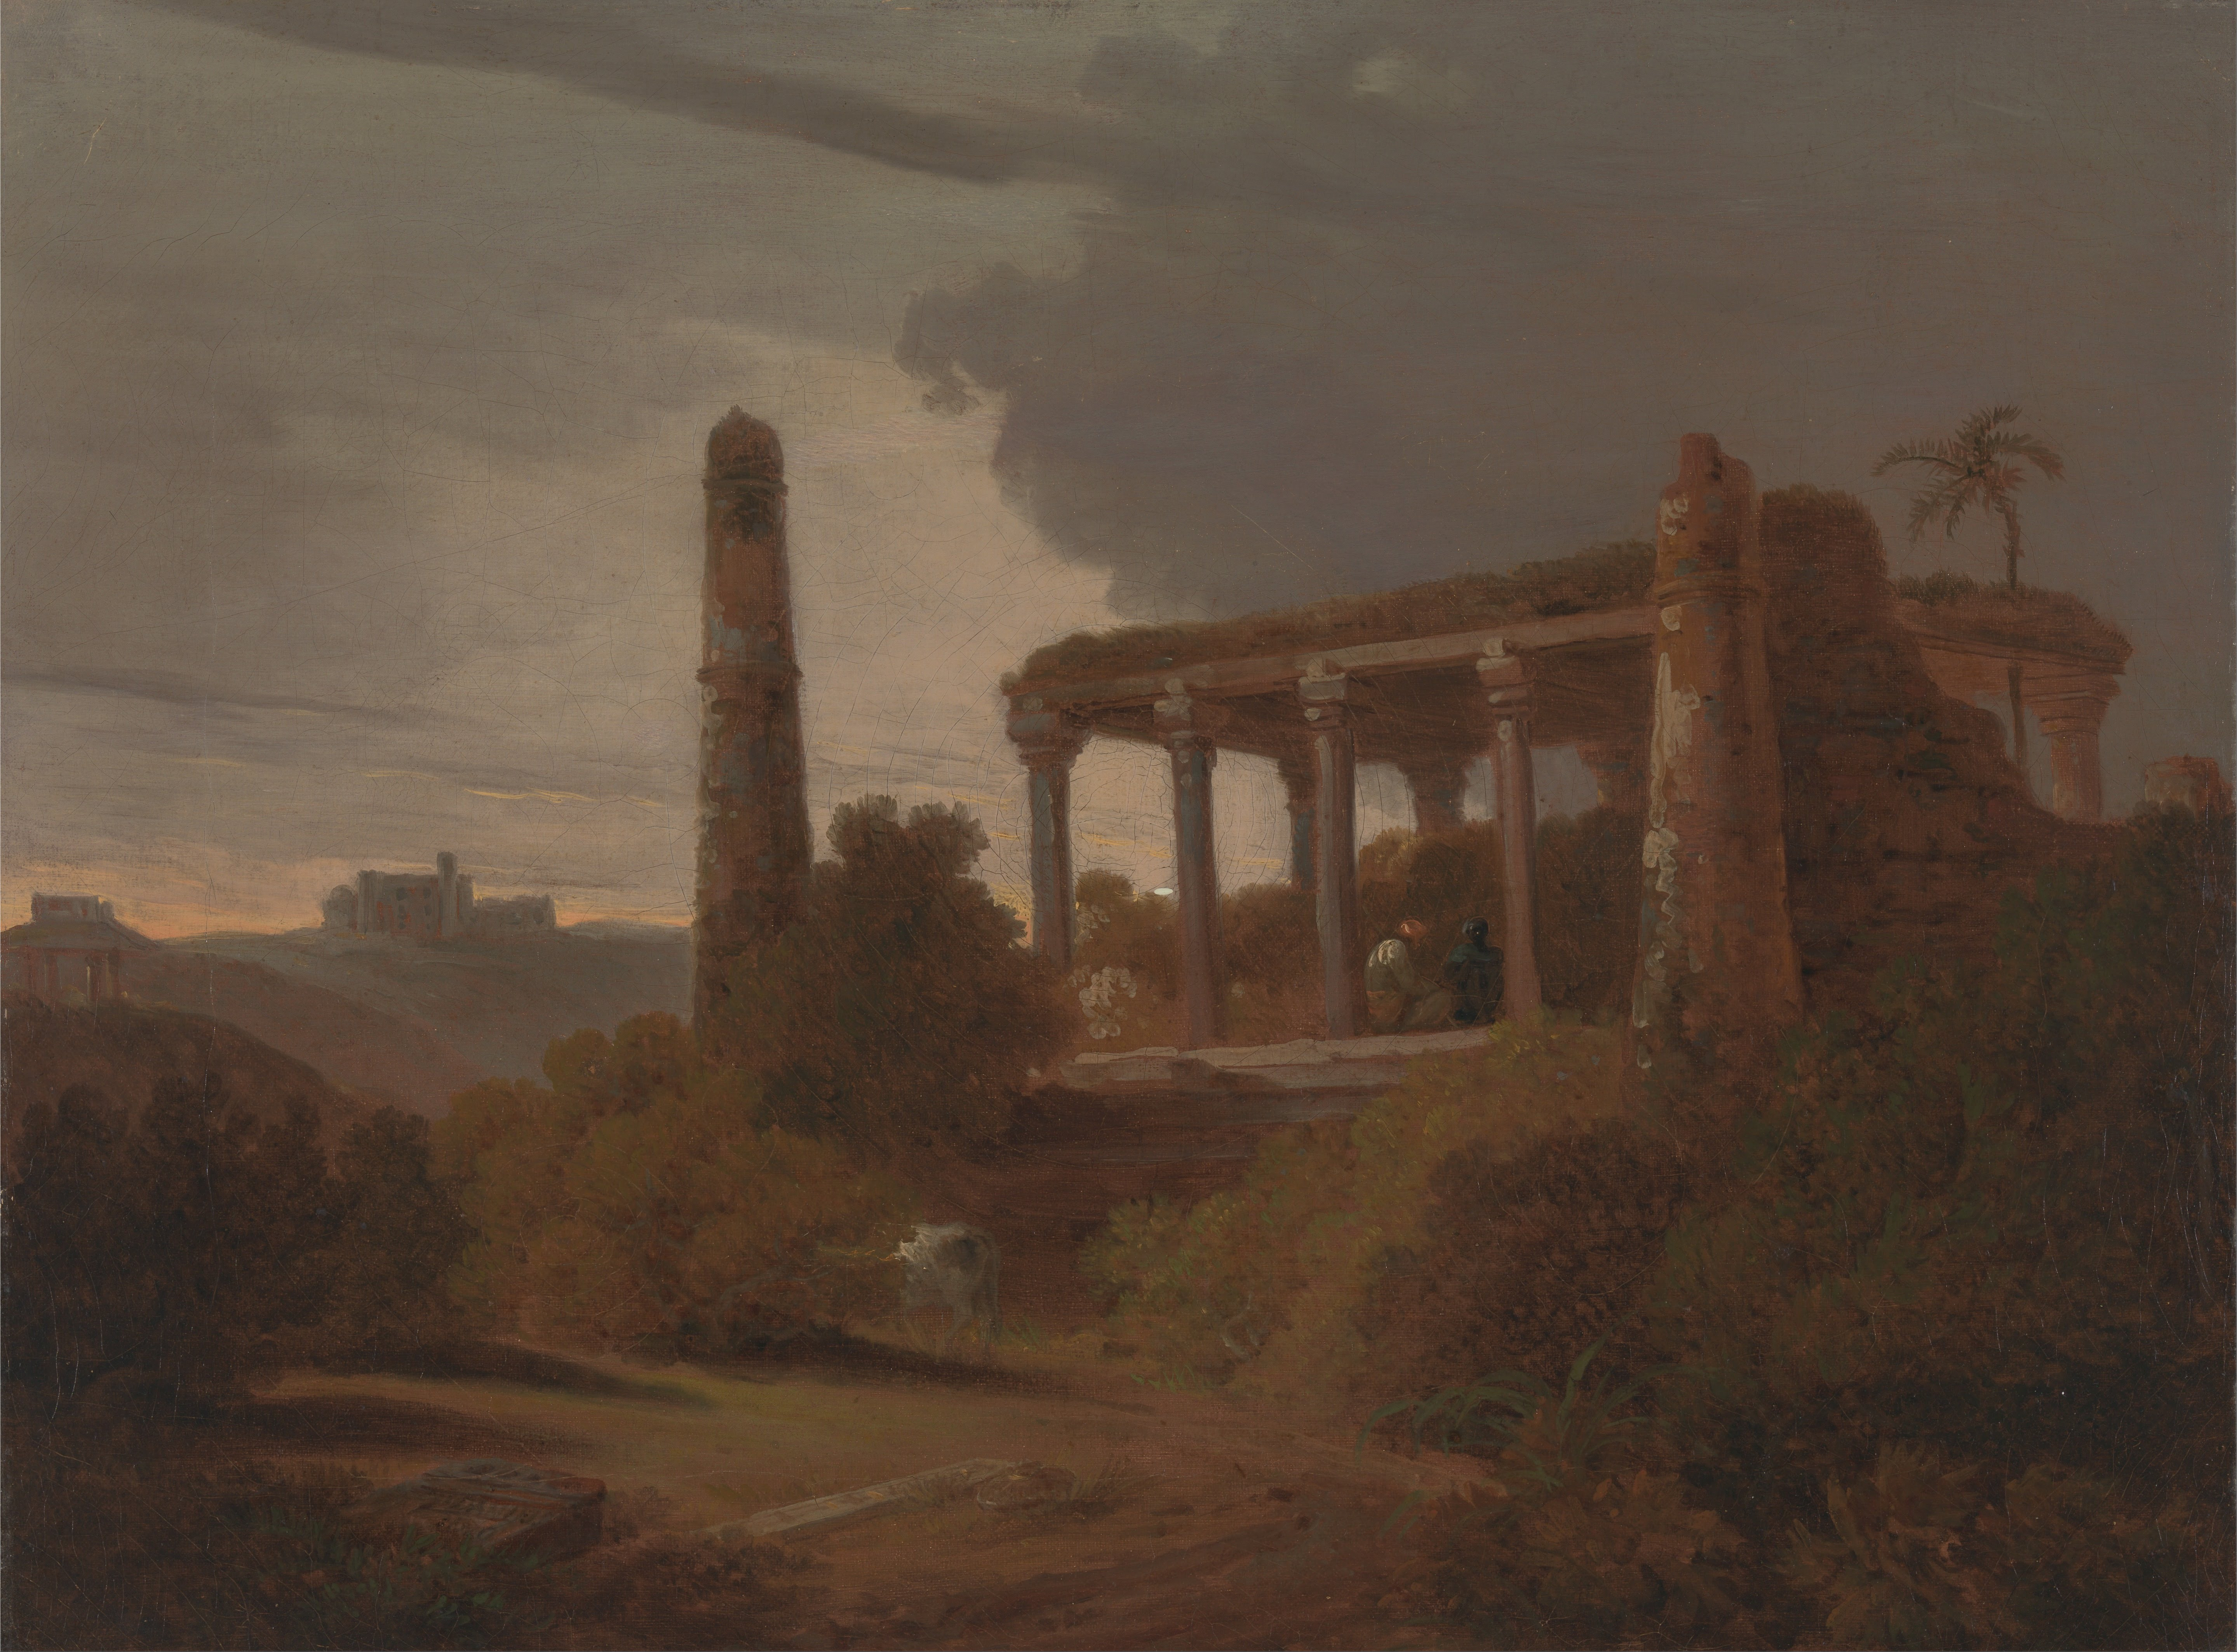 File:Thomas Daniell - Indian Landscape with Temple Ruins - Google Art Project.jpg - Wikimedia ...